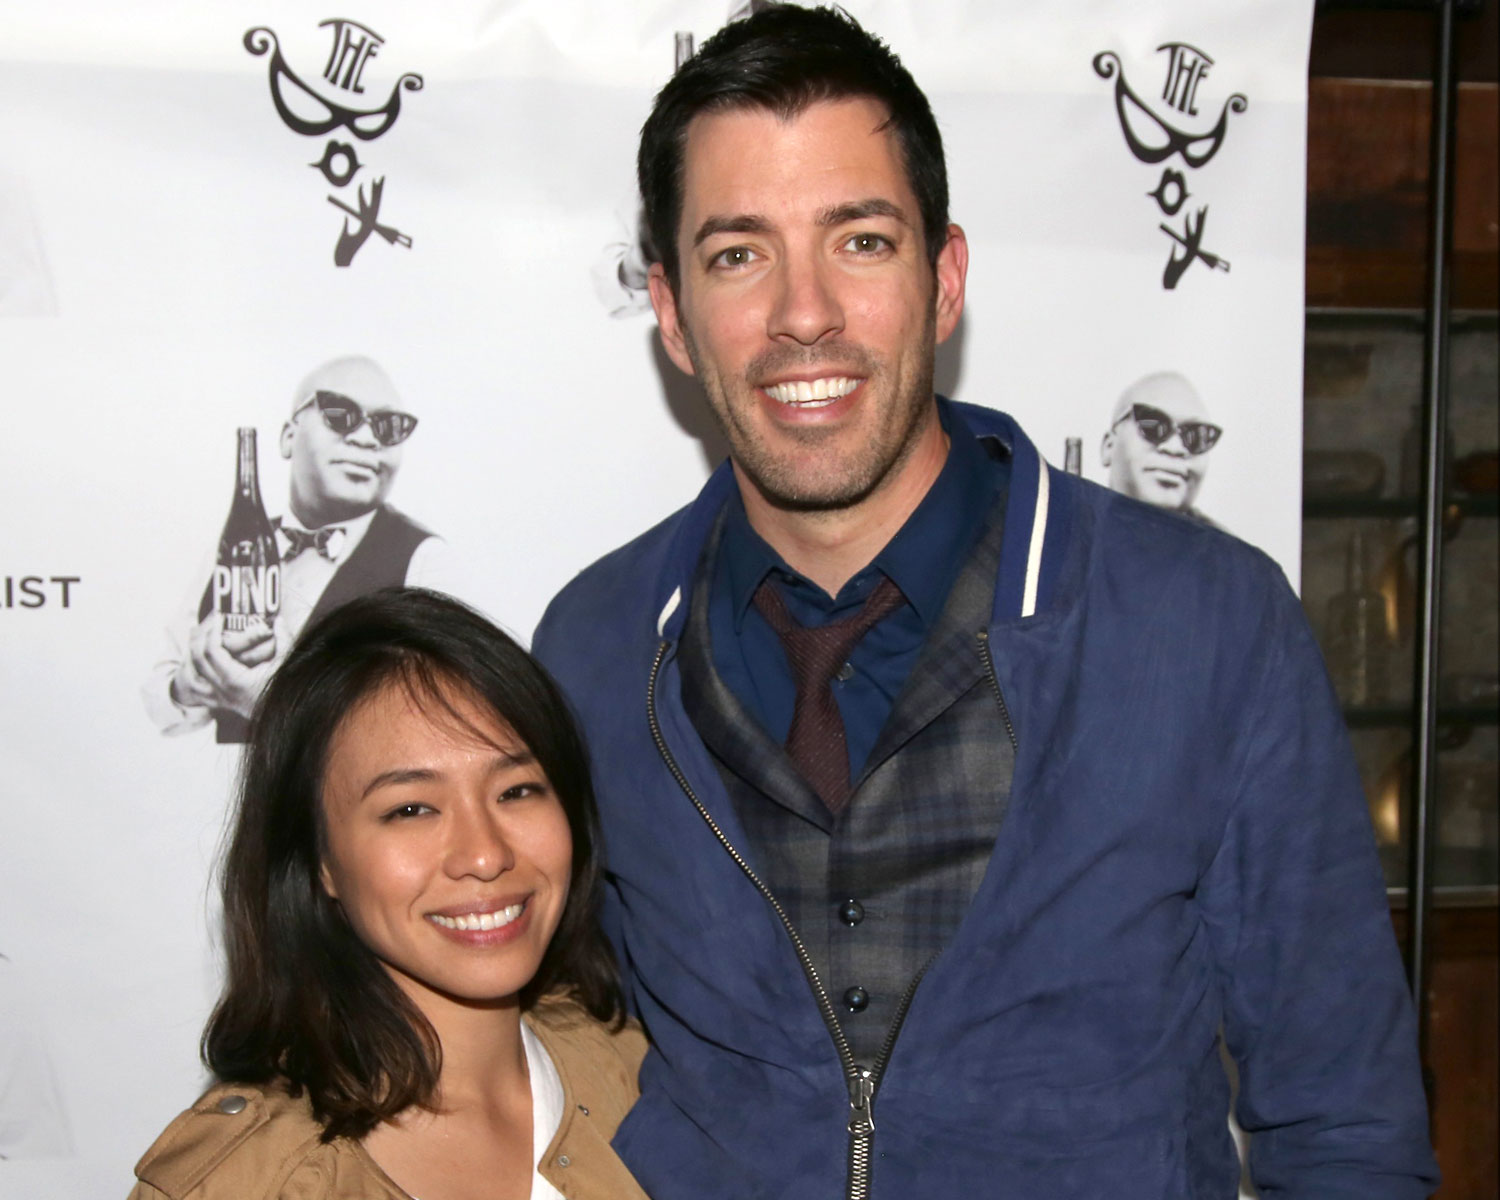 Drew Scott Wedding Date.Property Brothers Drew Scott And Linda Phan Will Have A Destination